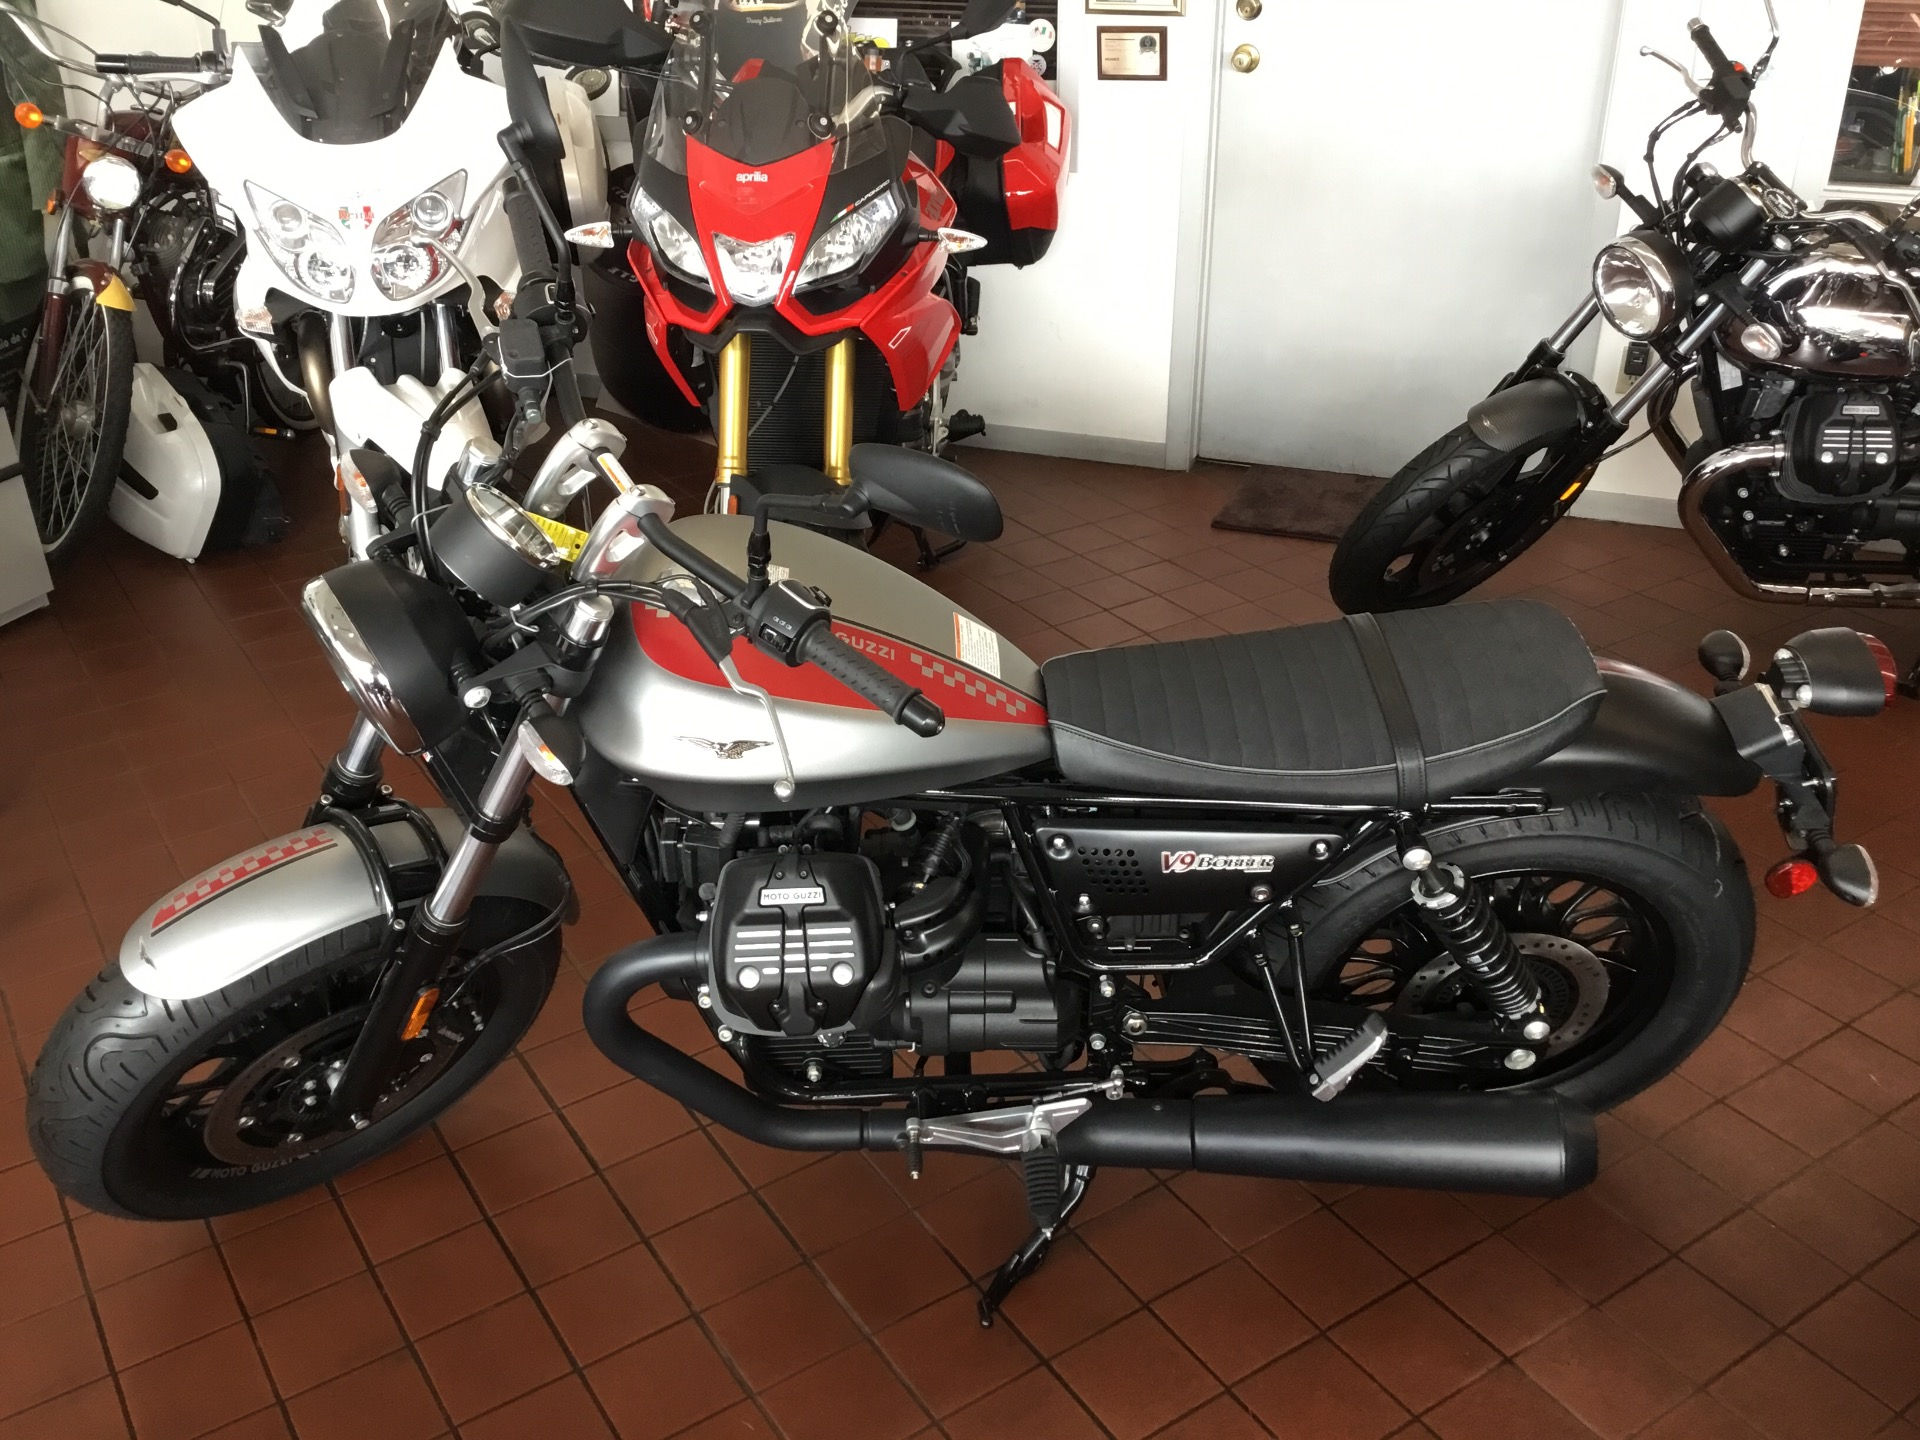 2017 moto guzzi v9 bobber stock 11047 for sale near. Black Bedroom Furniture Sets. Home Design Ideas